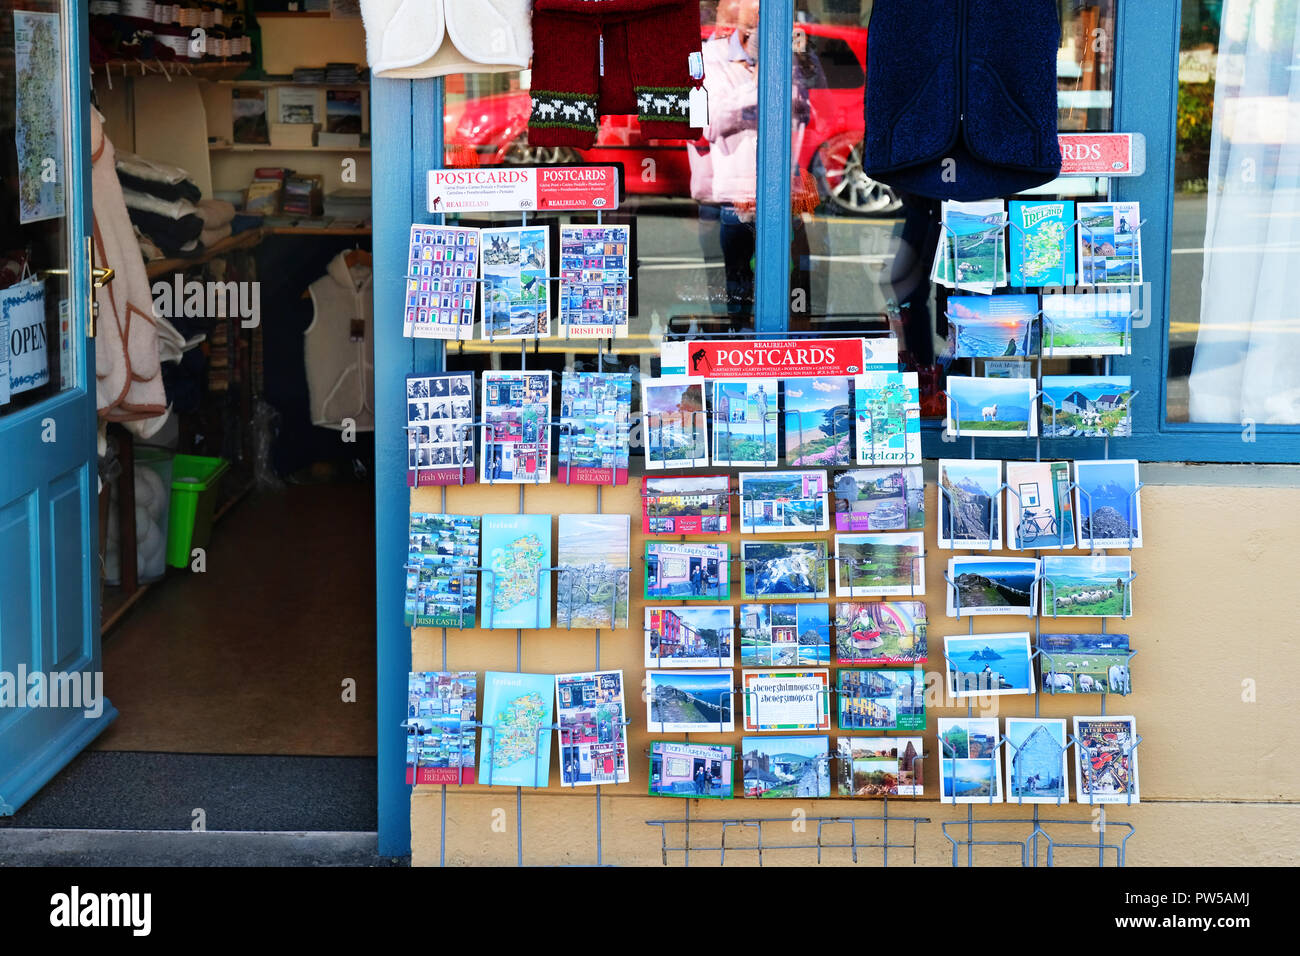 Outdoor display of postcards outside a tourist shop on the Ring of Kerry, Ireland - John Gollop - Stock Image